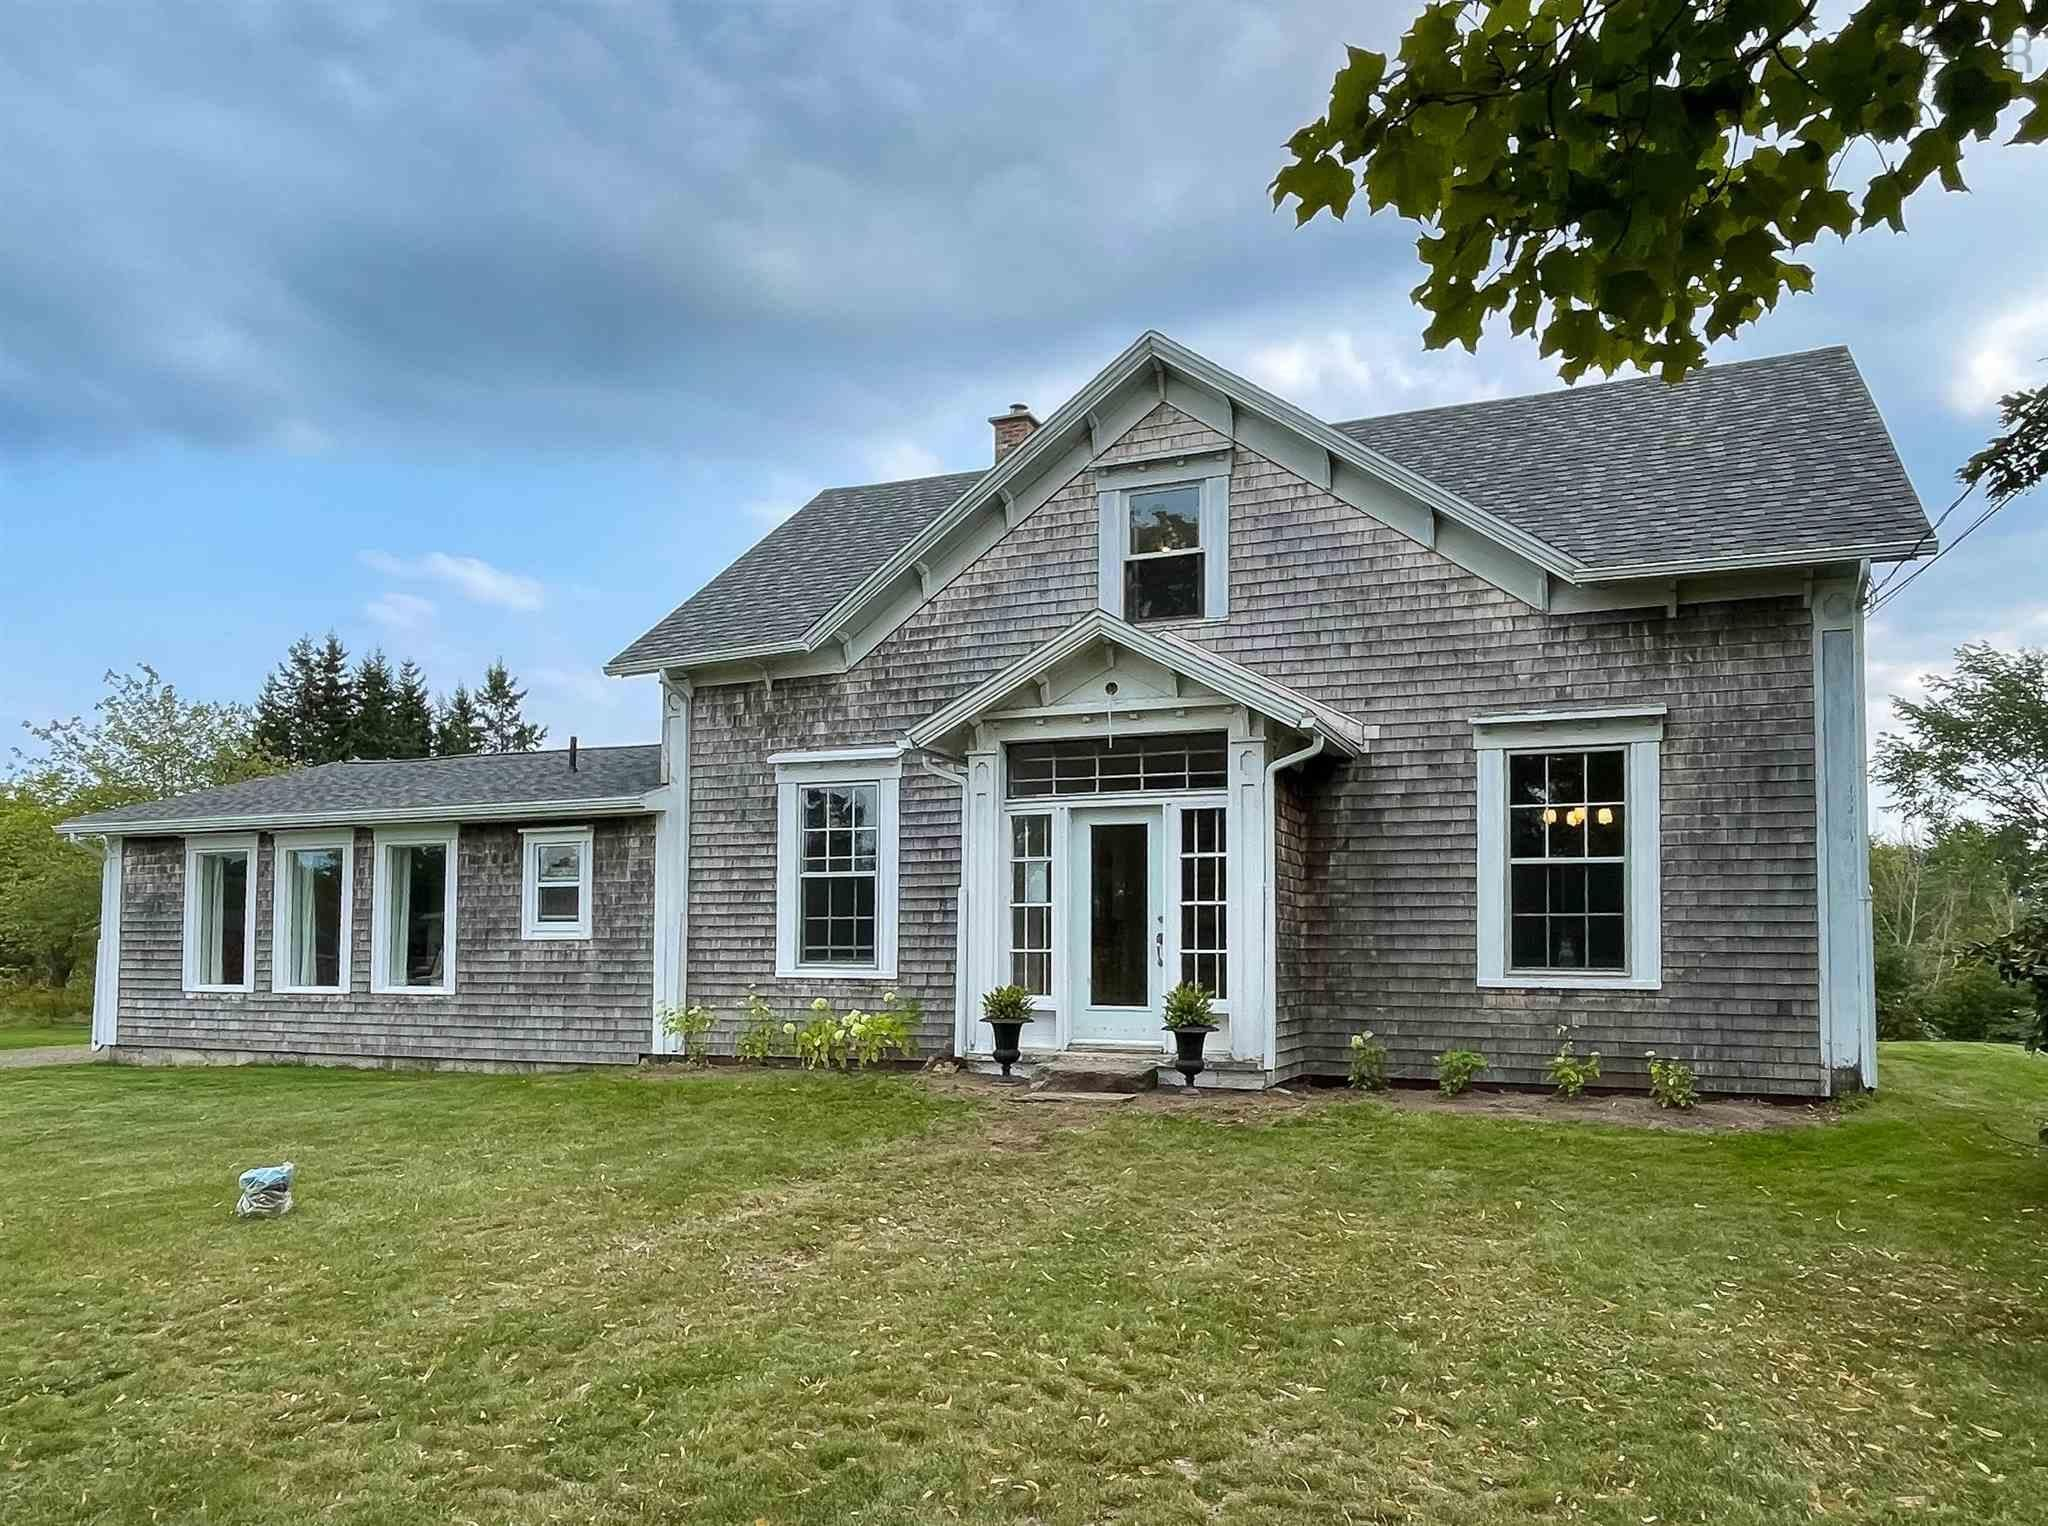 Main Photo: 3418 Highway 1 in Aylesford East: 404-Kings County Residential for sale (Annapolis Valley)  : MLS®# 202123831